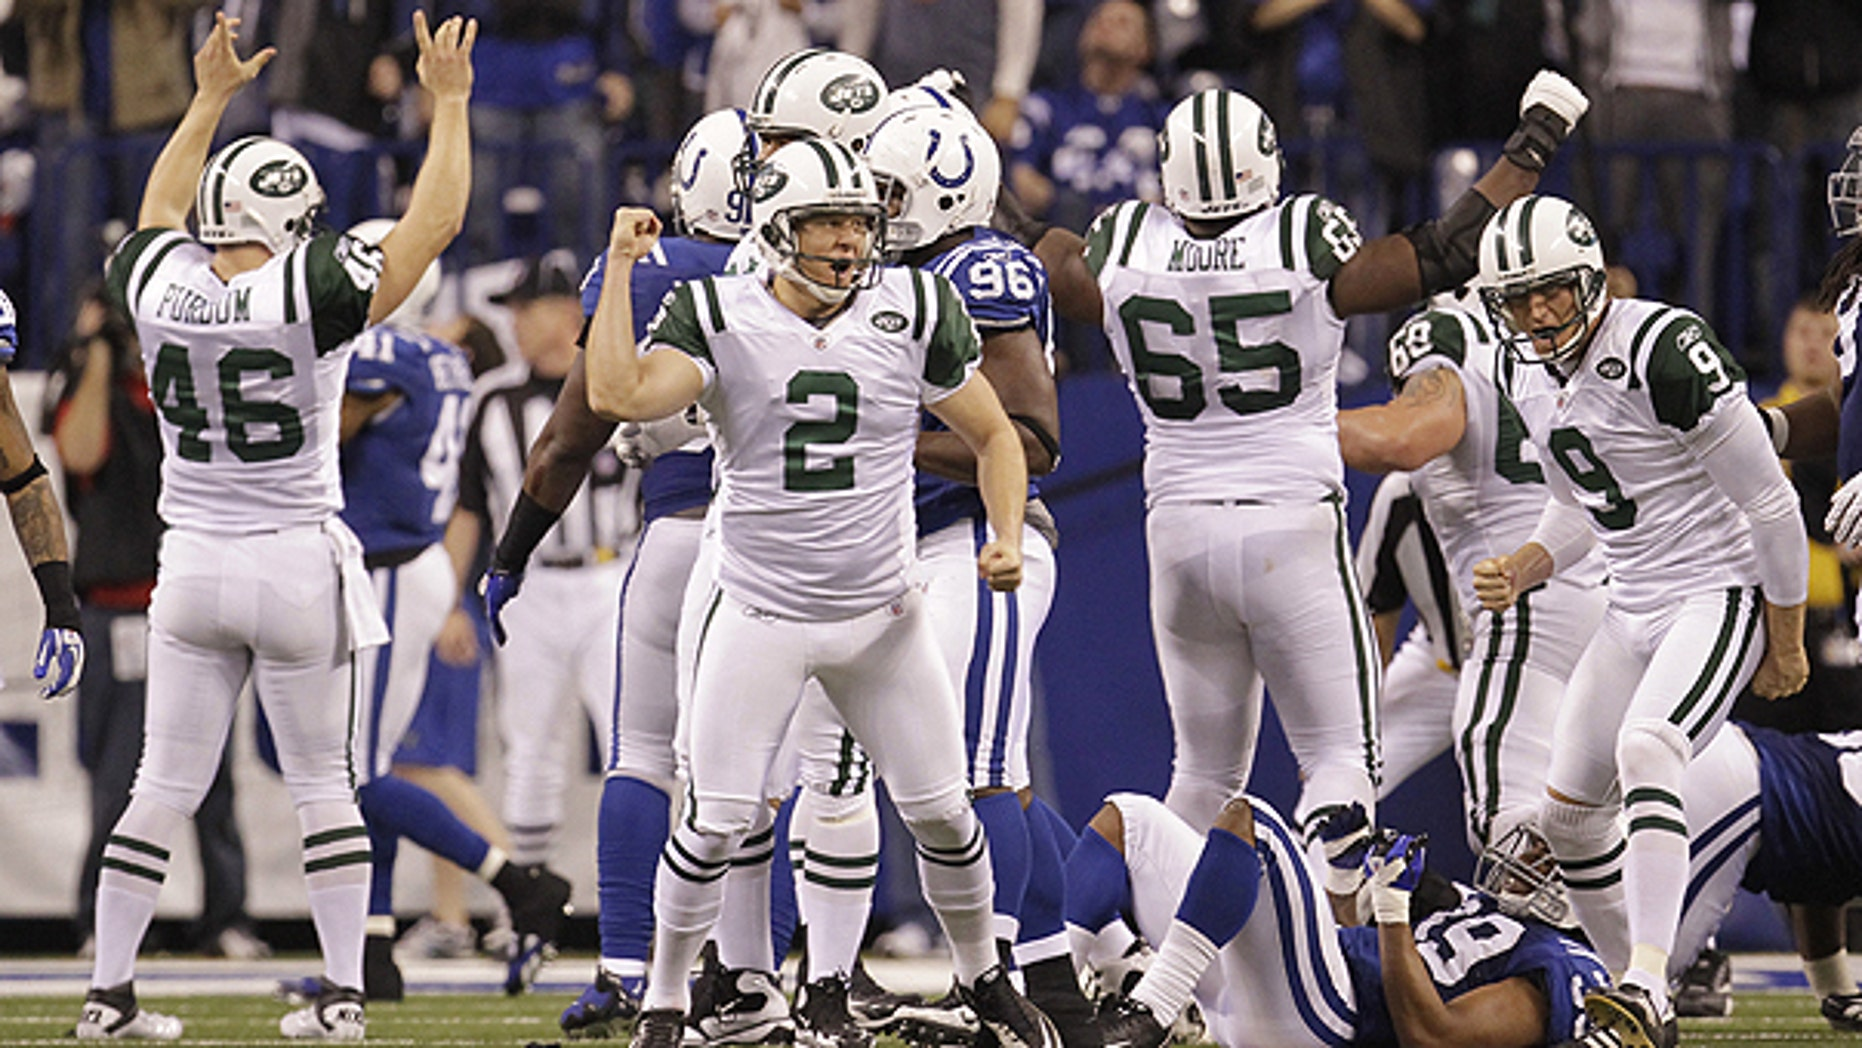 Jan. 8: New York Jets place kicker Nick Folk (2) reacts after kicking the game winning 32-yard field goal during the fourth quarter of an NFL AFC wild card football playoff game against the Indianapolis Colts in Indianapolis.